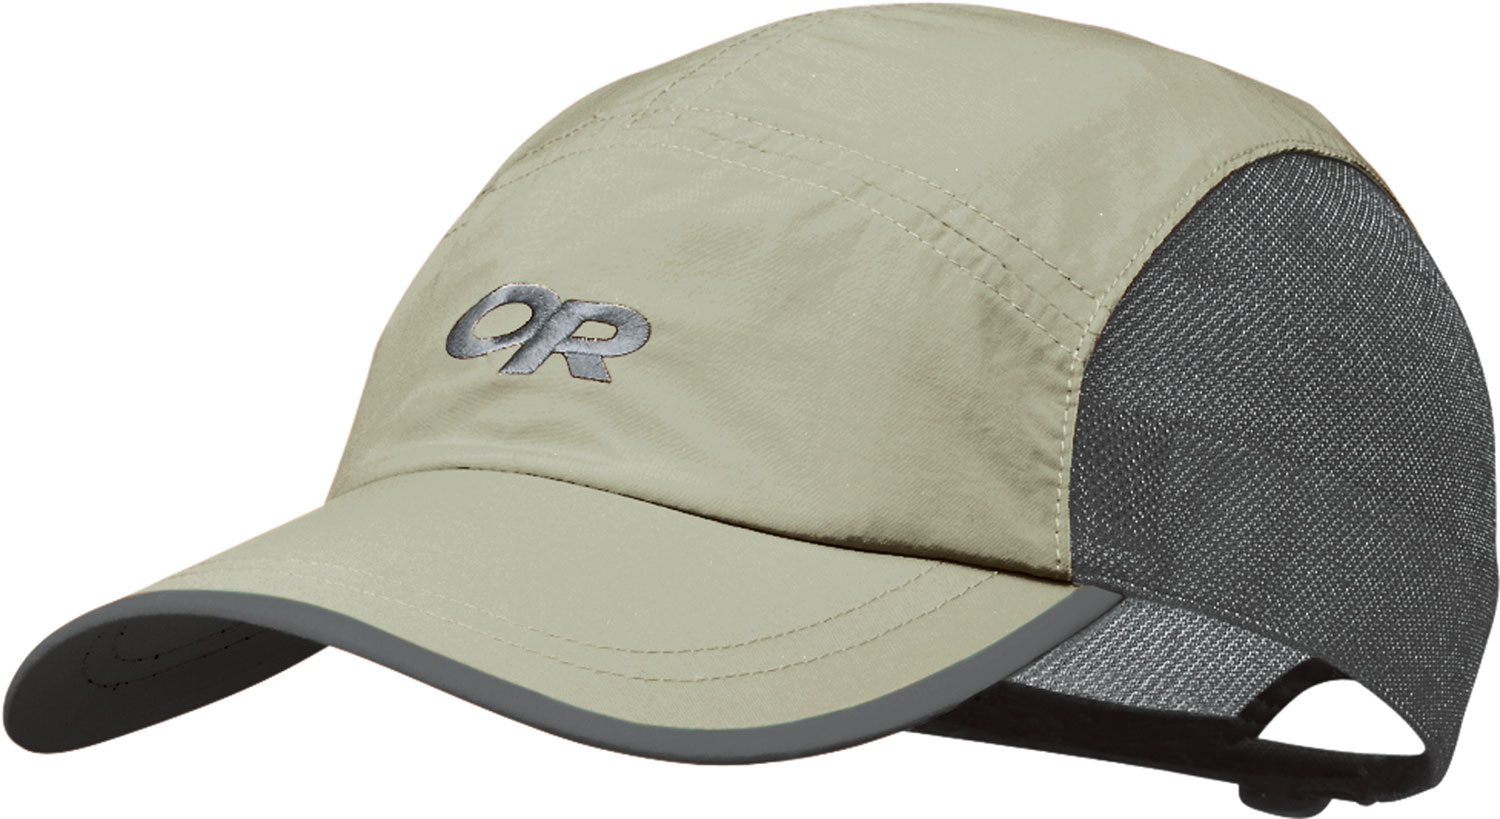 Key Features of the Outdoor Research Swift Hat: Quick-dry, nylon Supplex® fabric front and top panels Mesh liner crown aids ventilation Shaped, plastic-stiffened bill TransAction™ headband Quick-release buckle adjustment - $14.95